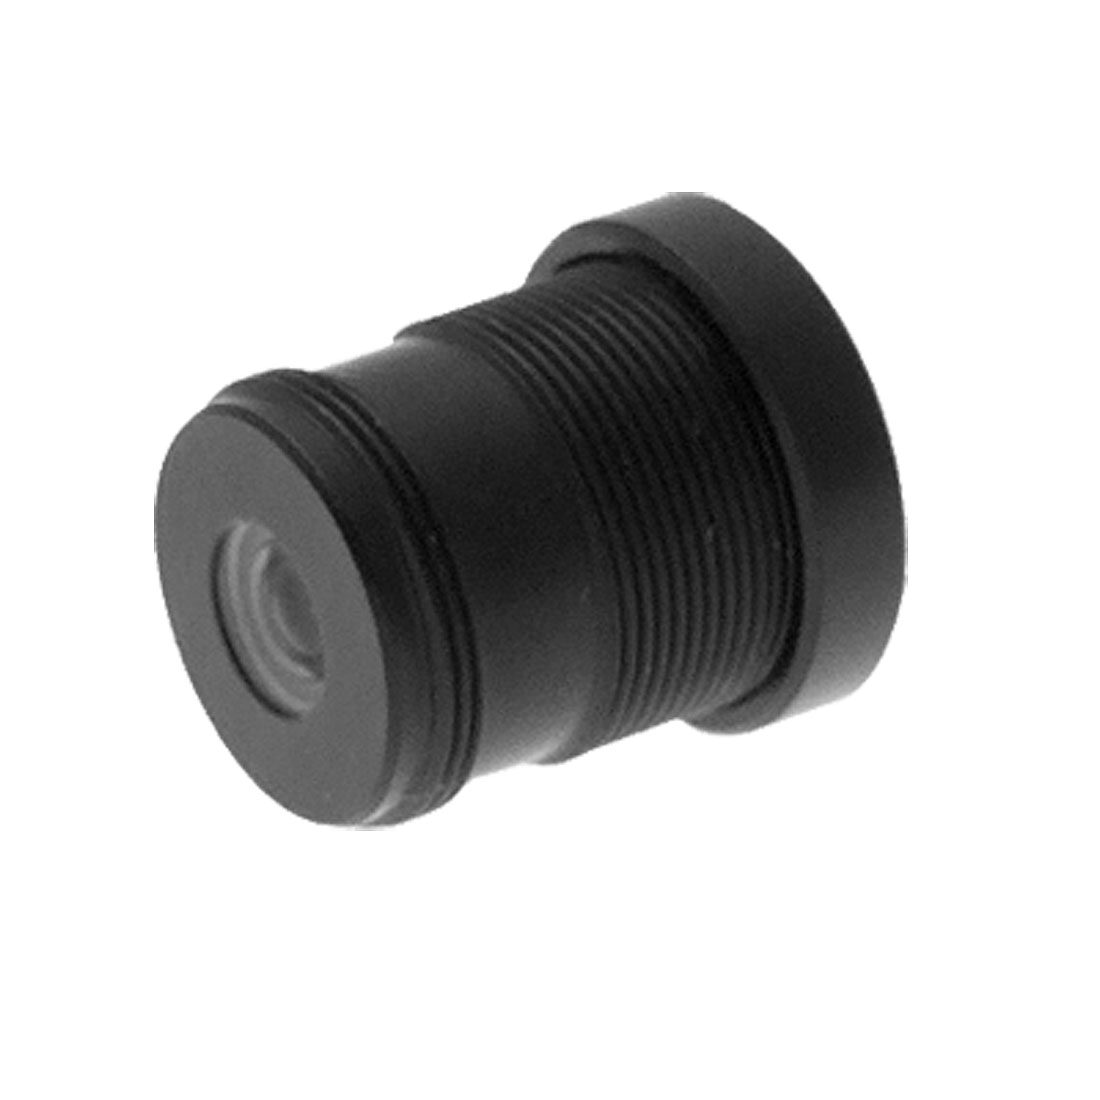 Board Security Pinhole Hidden CCTV Photo Camera Lens with 2.6 MM Focal Length